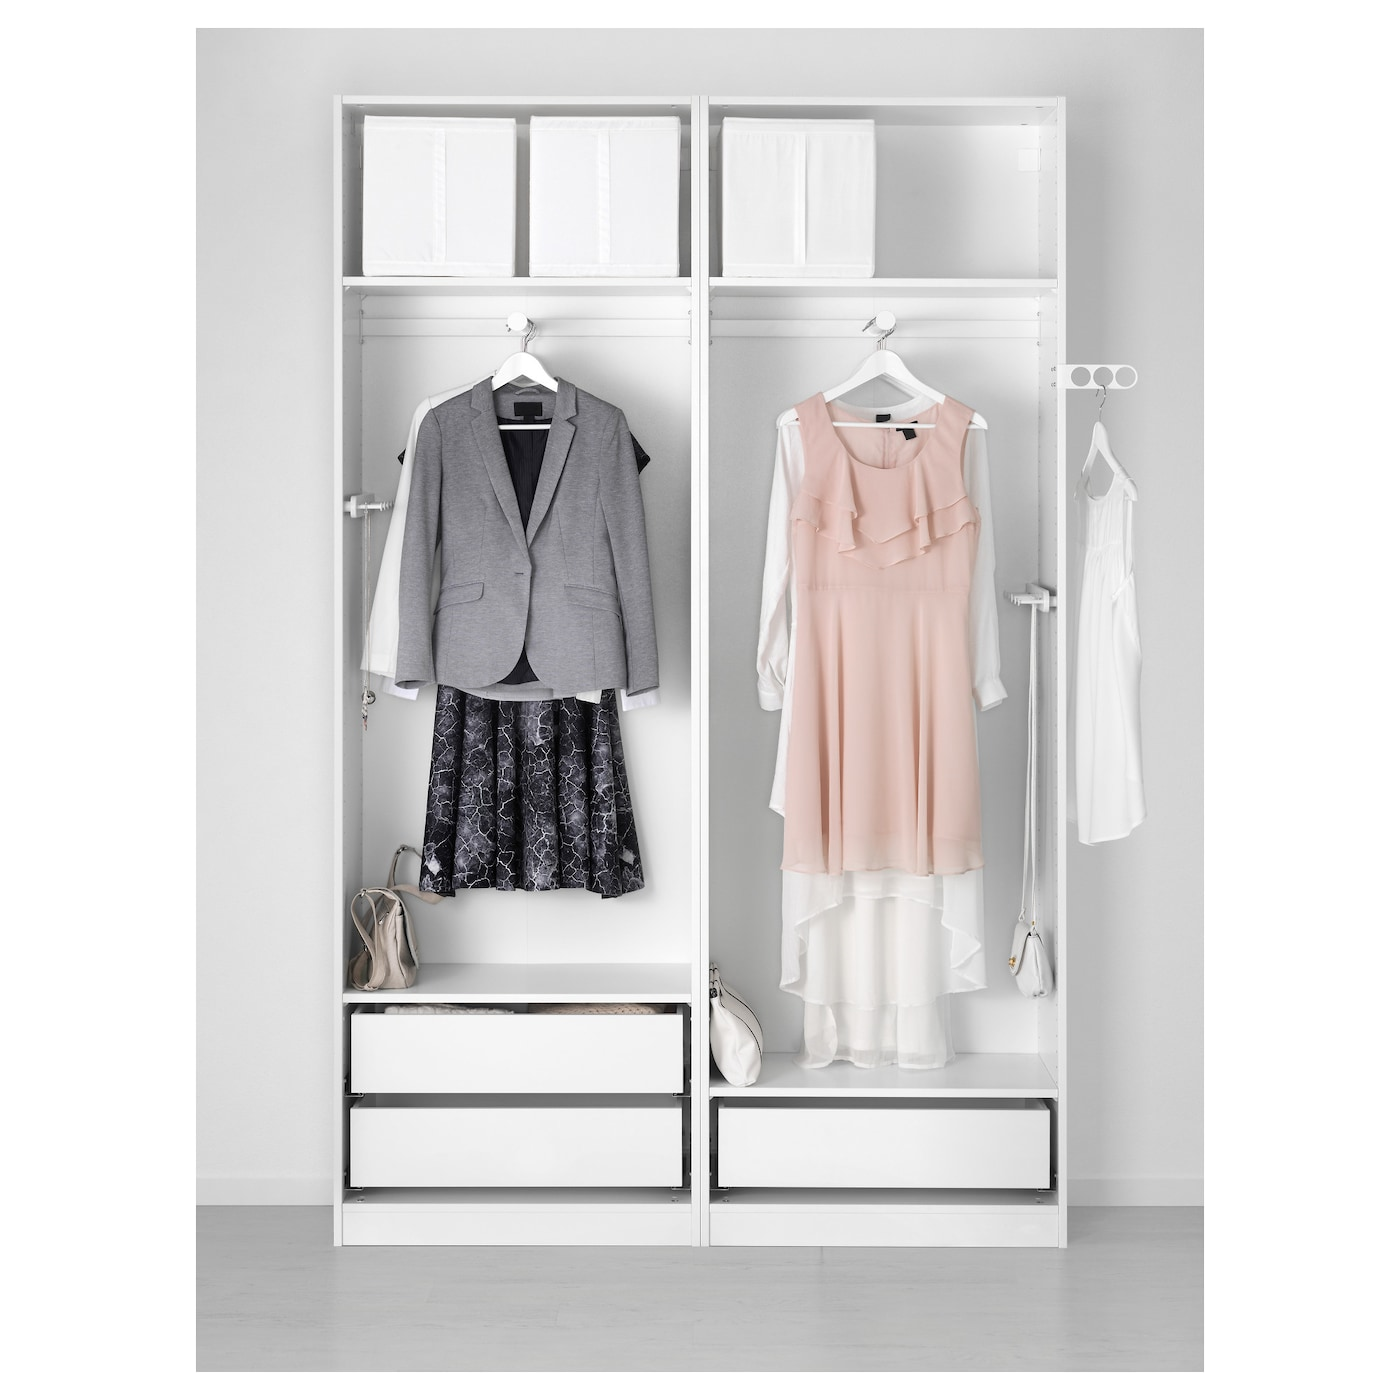 pax armoire penderie blanc auli miroir 150 x 44 x 236 cm ikea. Black Bedroom Furniture Sets. Home Design Ideas